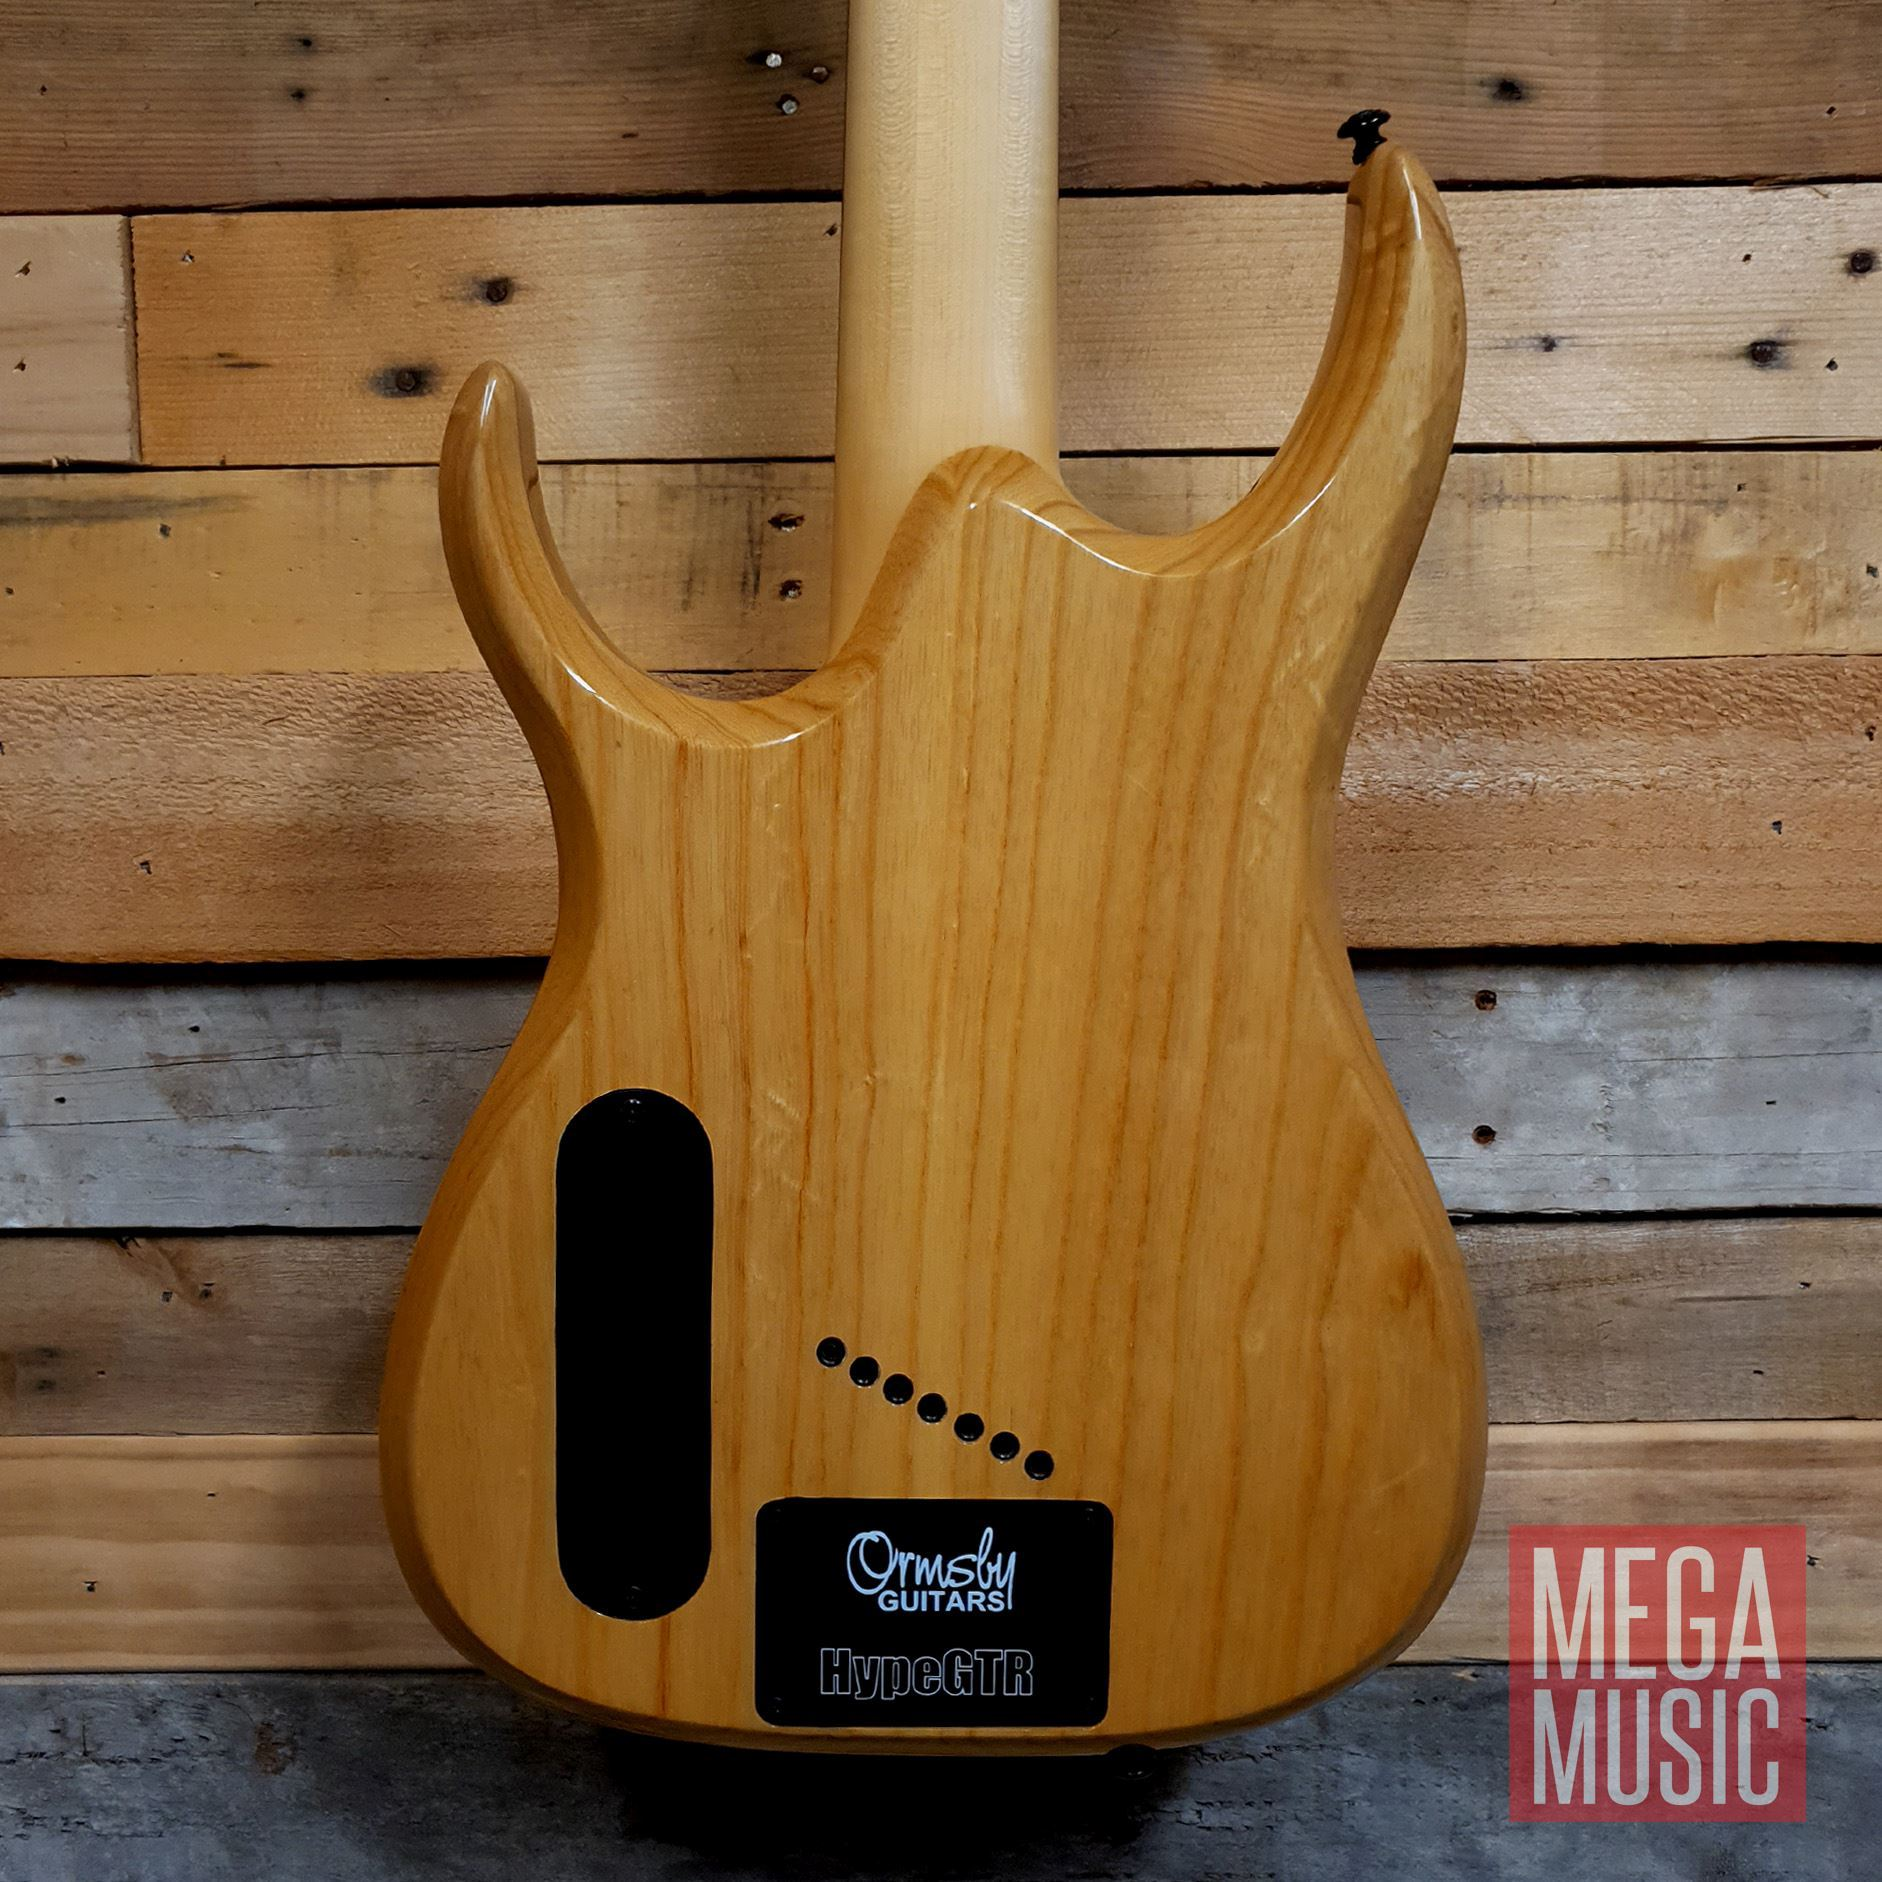 Ormsby Reissue Hype GTR 7 String Electric Guitar - Gloss Ash - Body Back